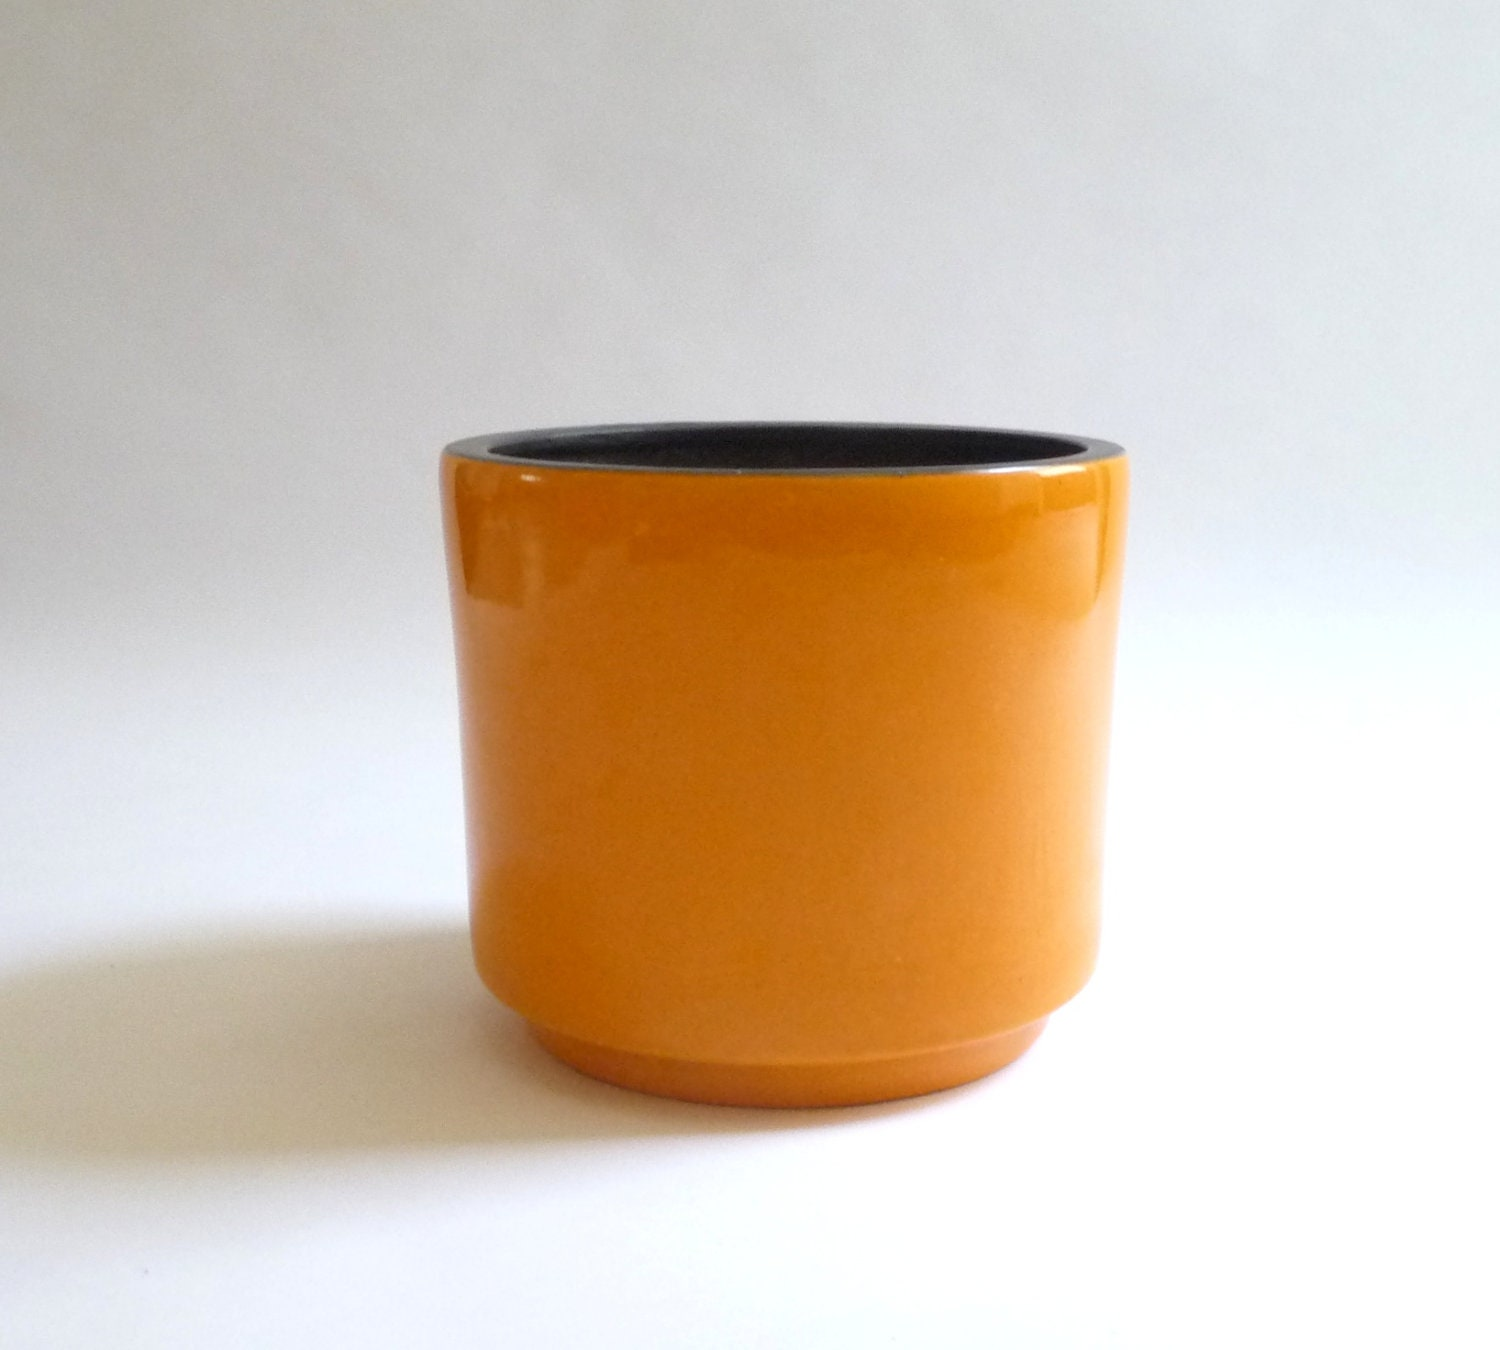 Vintage 1970s Orange Ceramic Planter